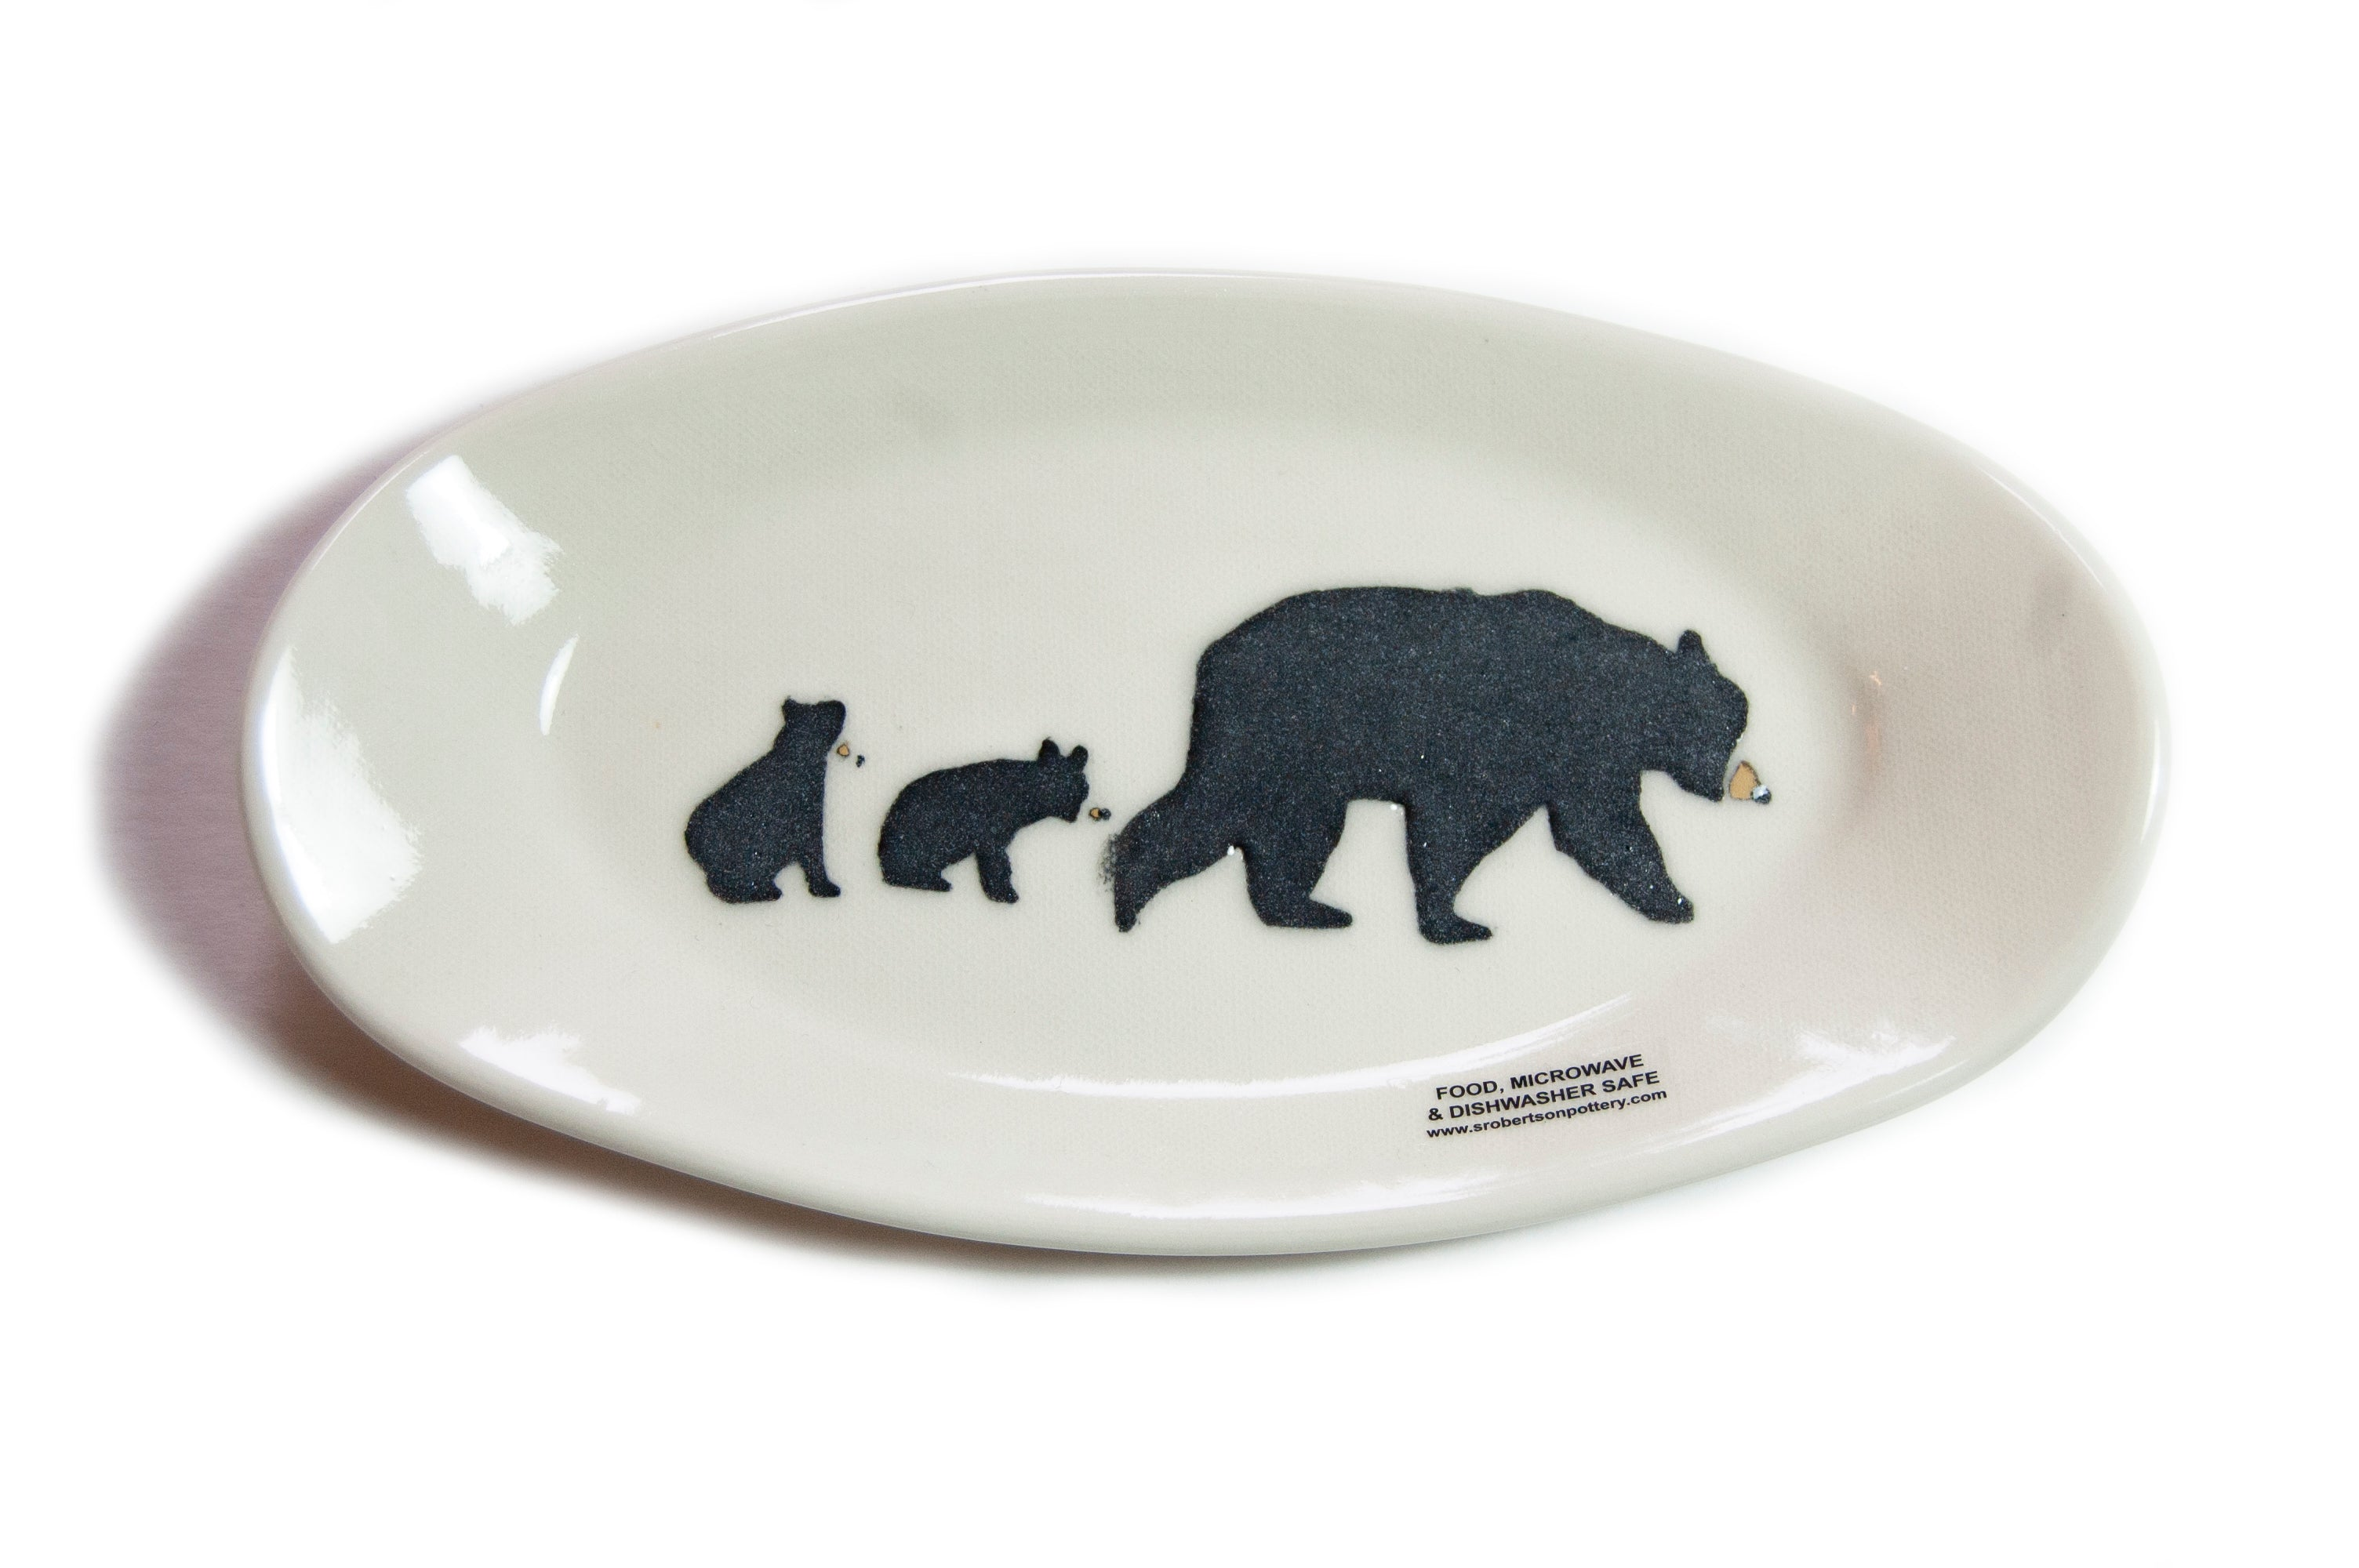 Made in Canada Oval ceramic dish with hand painted black bear and cubs